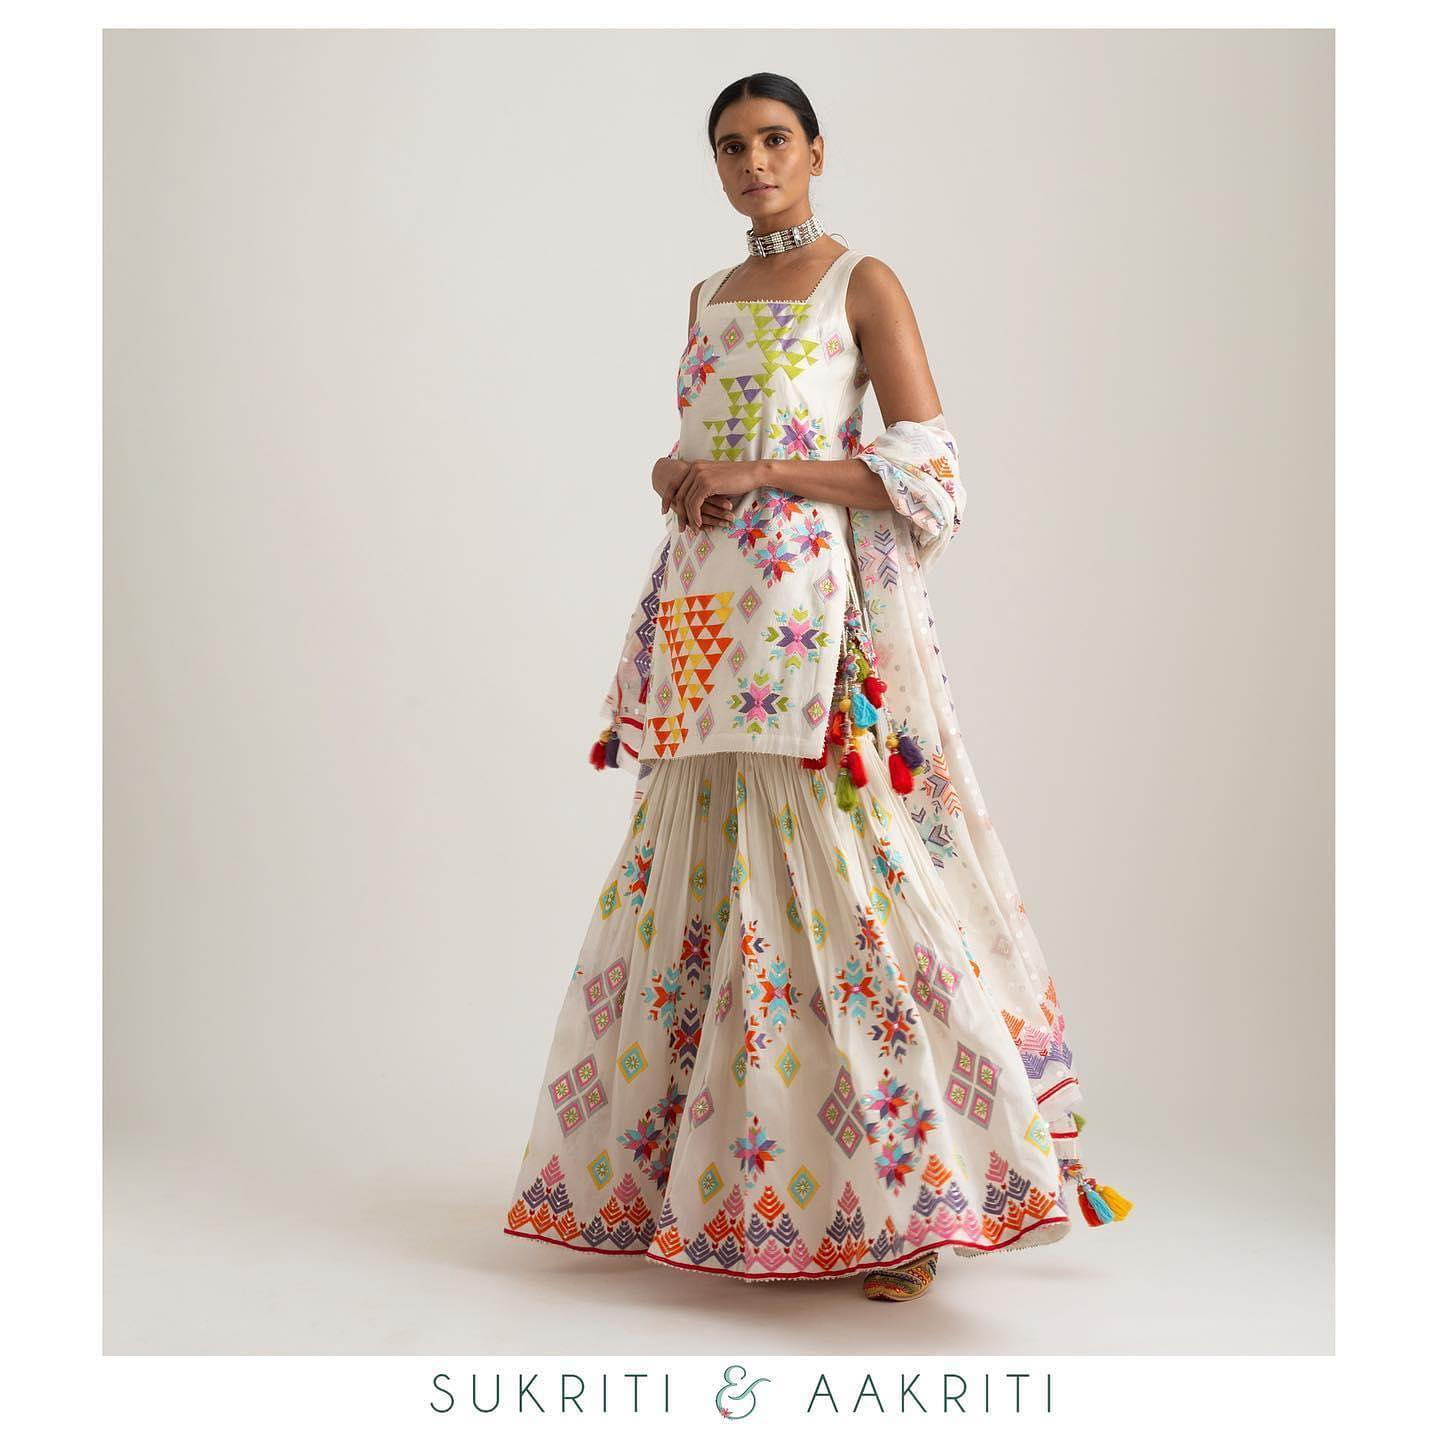 Off white short kurta paired up with printed sharara and tikli with hand embroidered detailed. 2021-09-21